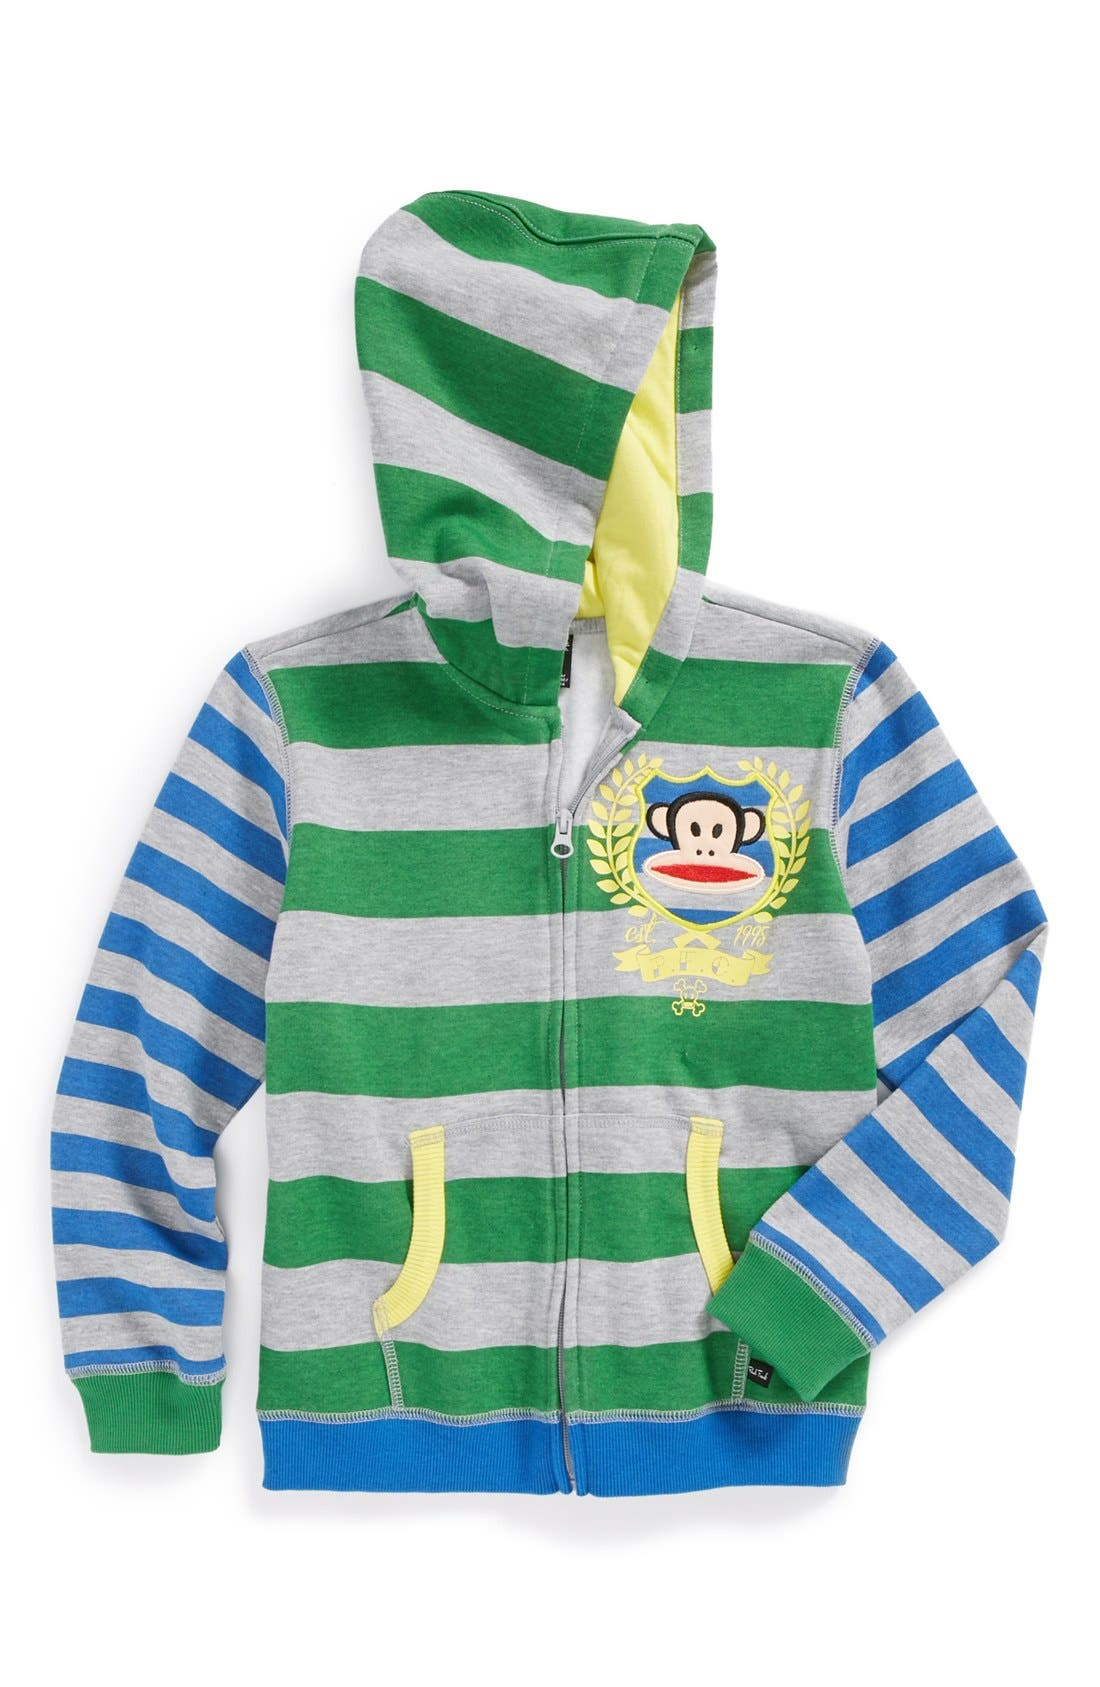 Alternate Image 1 Selected - Paul Frank 'Baseball' Hoodie (Little Boys)